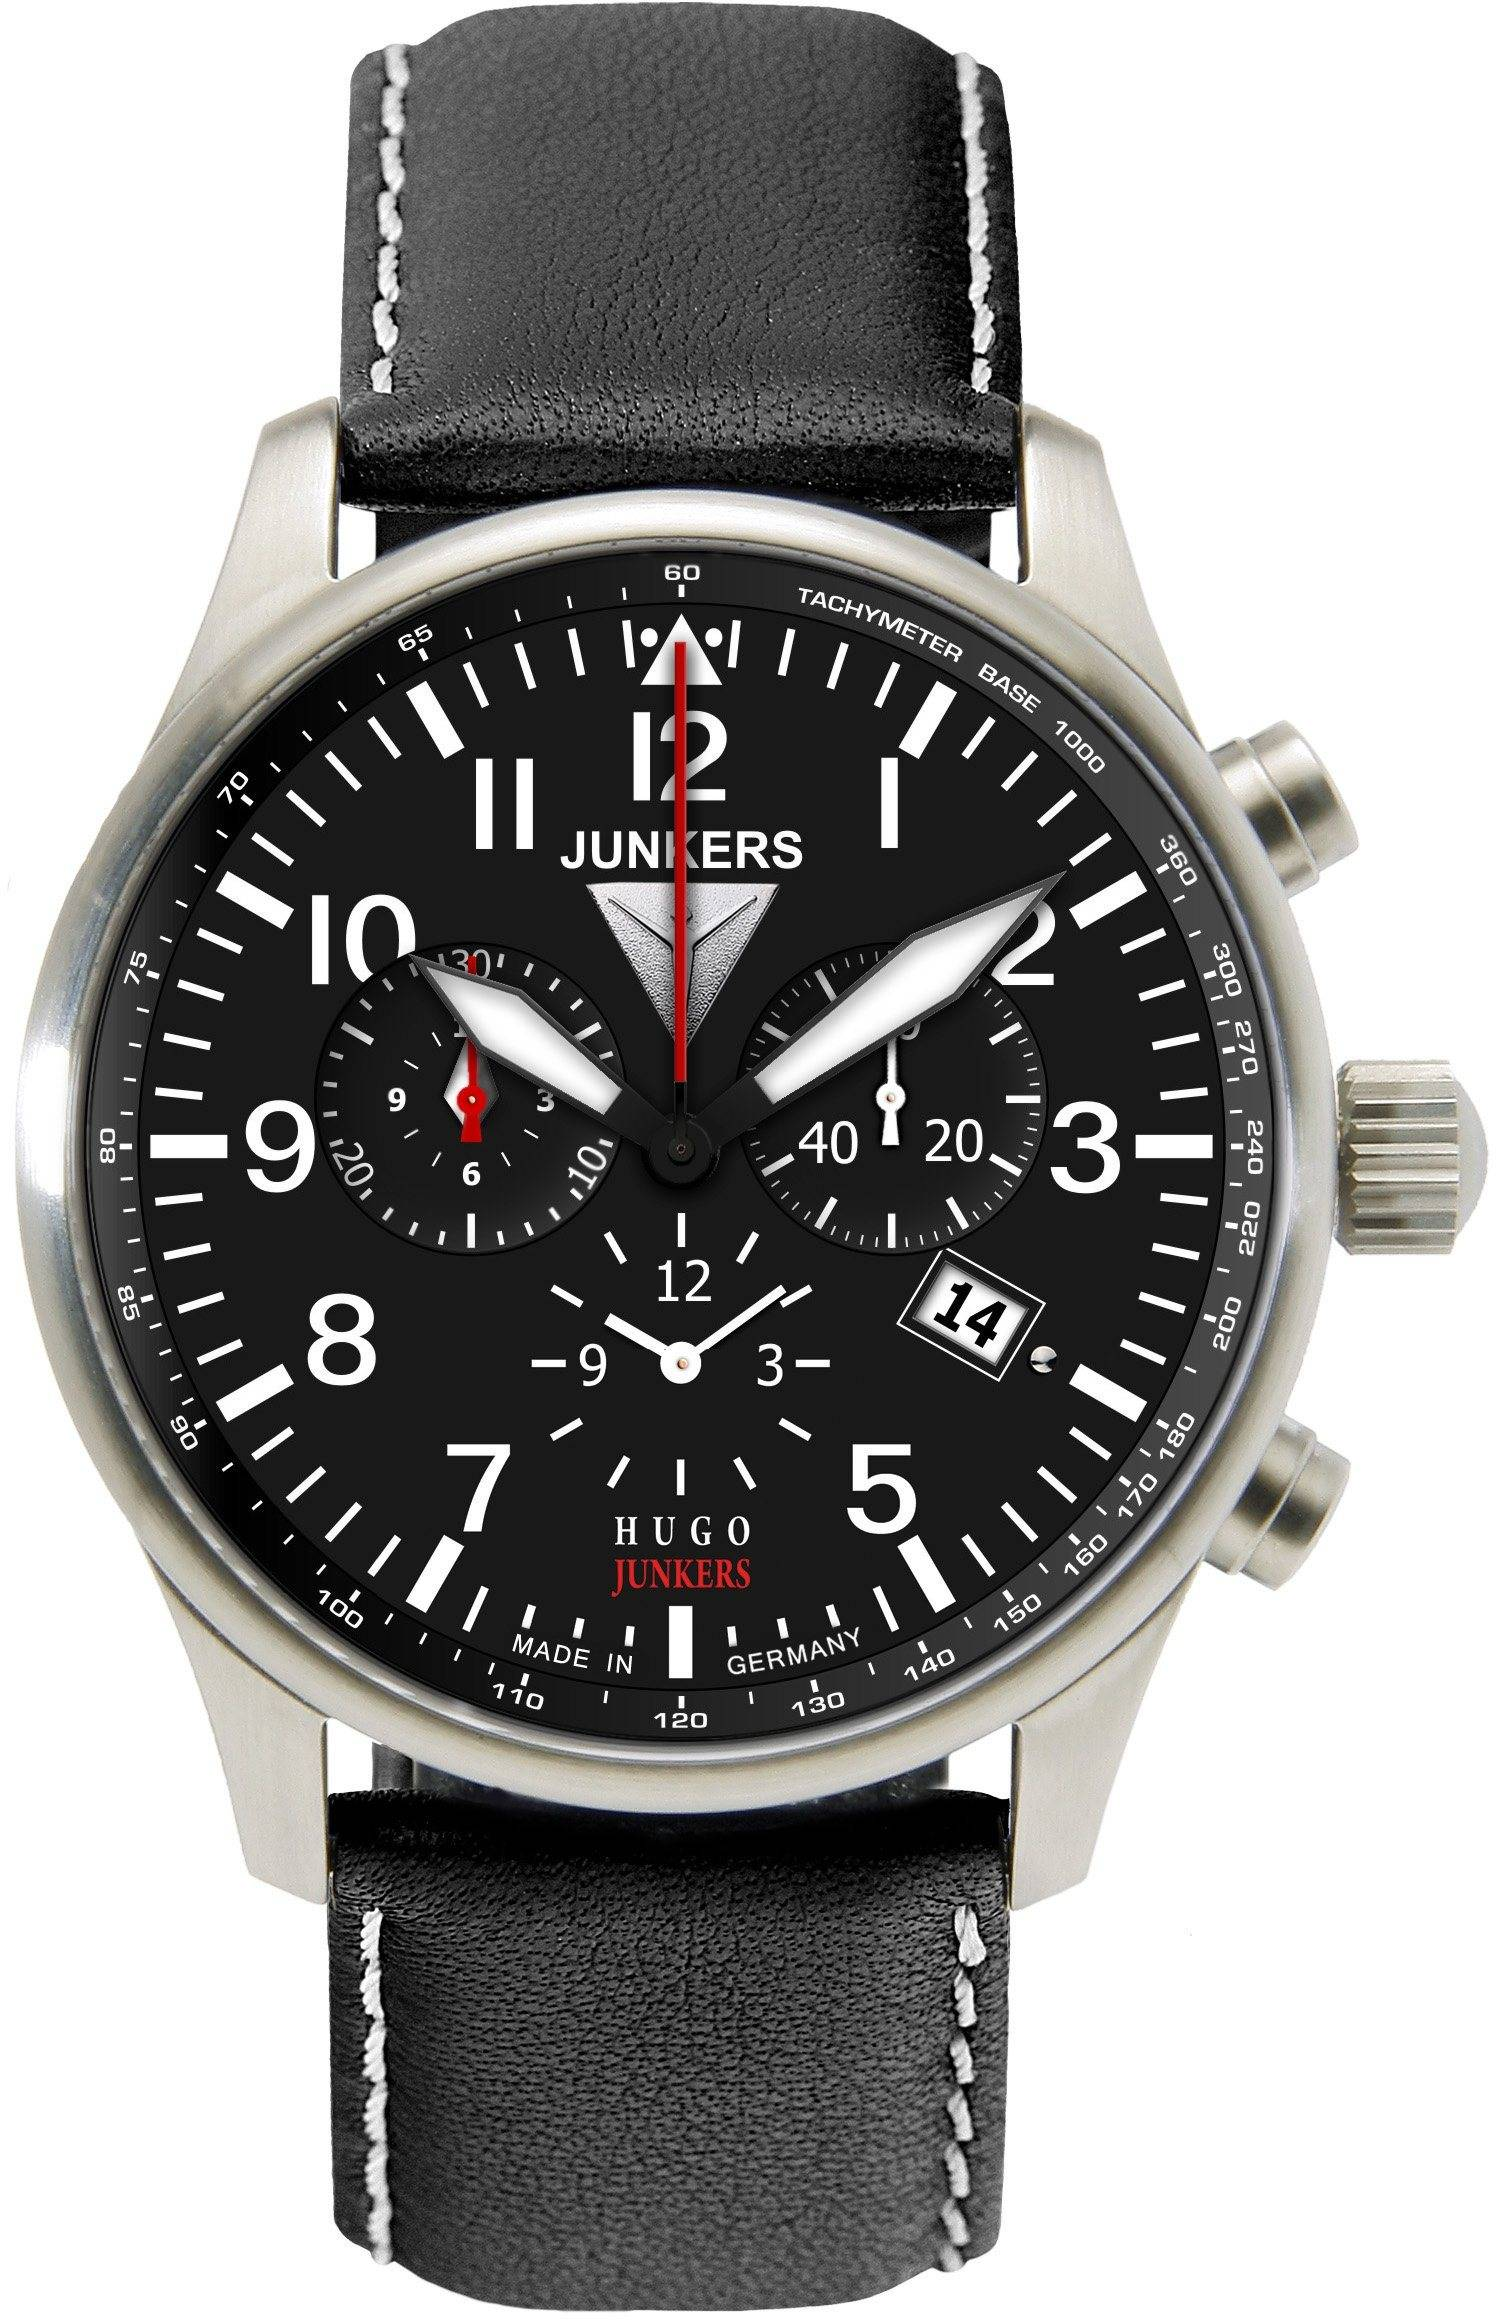 Junkers-Uhren Chronograph »Hugo Junkers, 6684-2« Made in Germany, schwarz